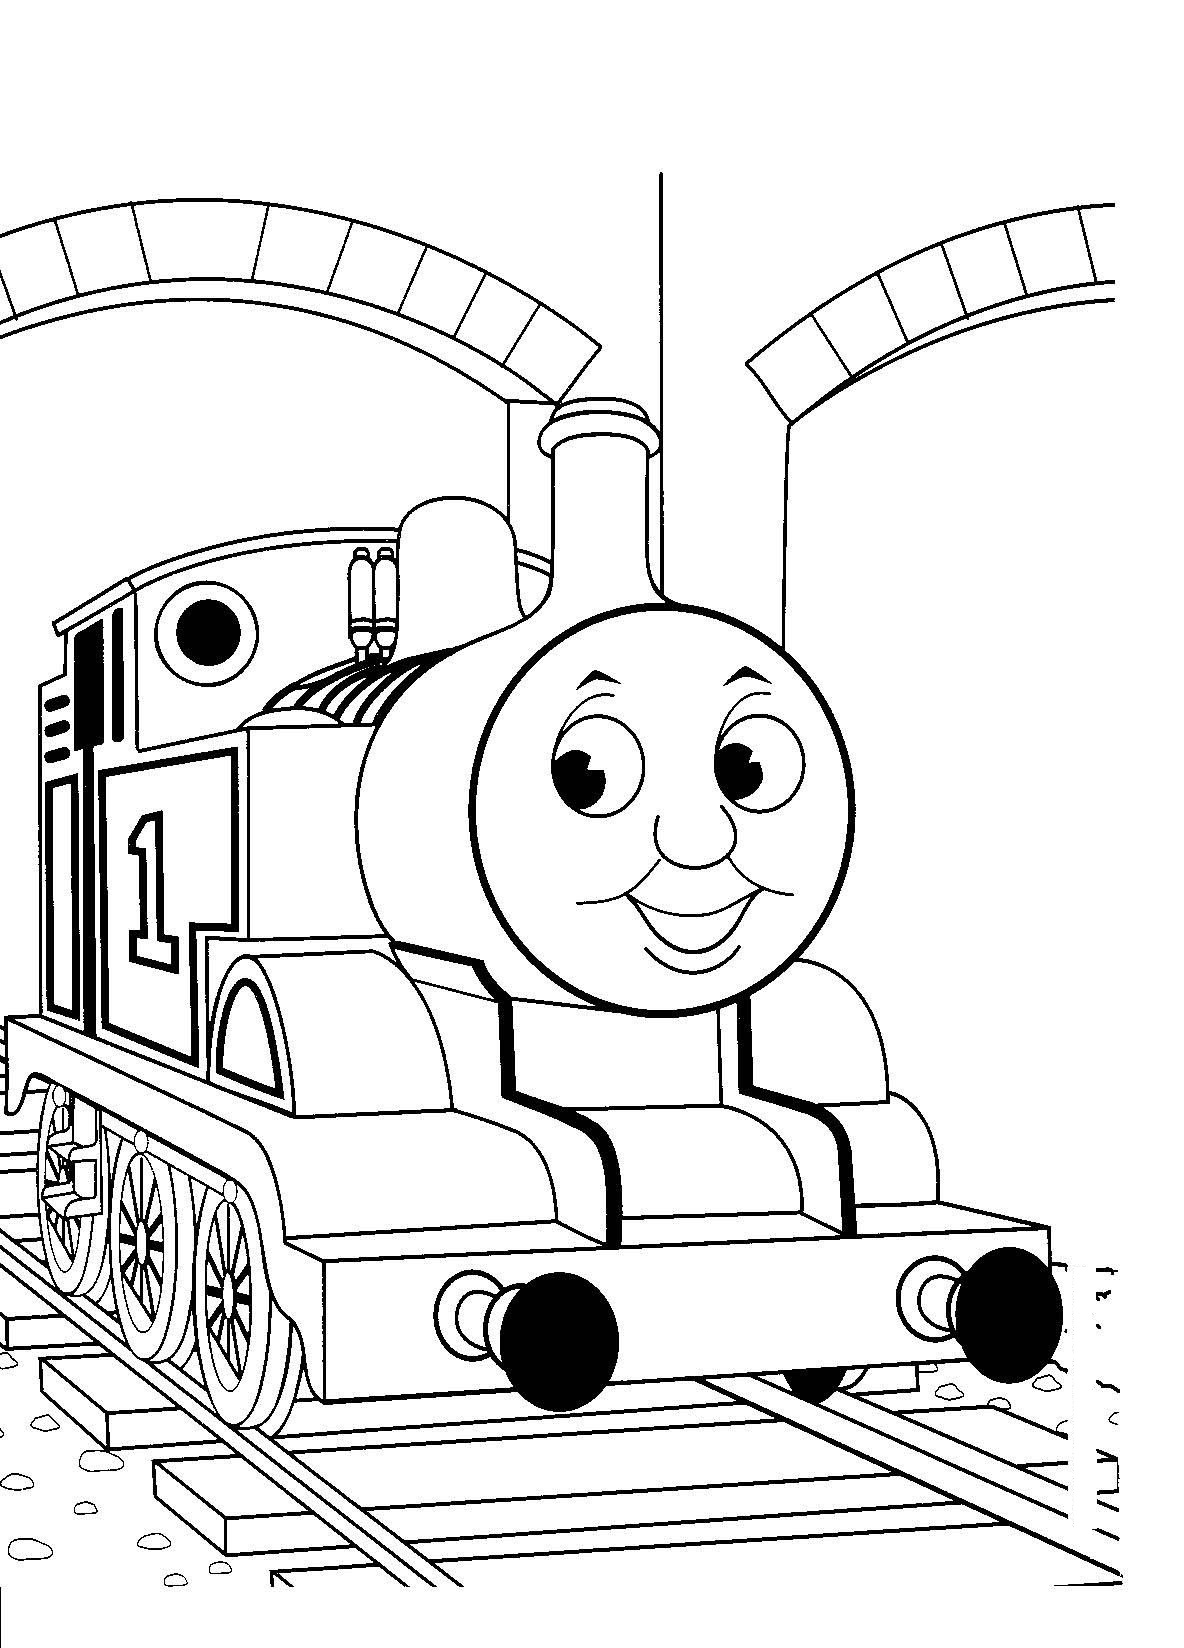 Kids coloring book pages free - Free Printable Thomas The Train Coloring Pages